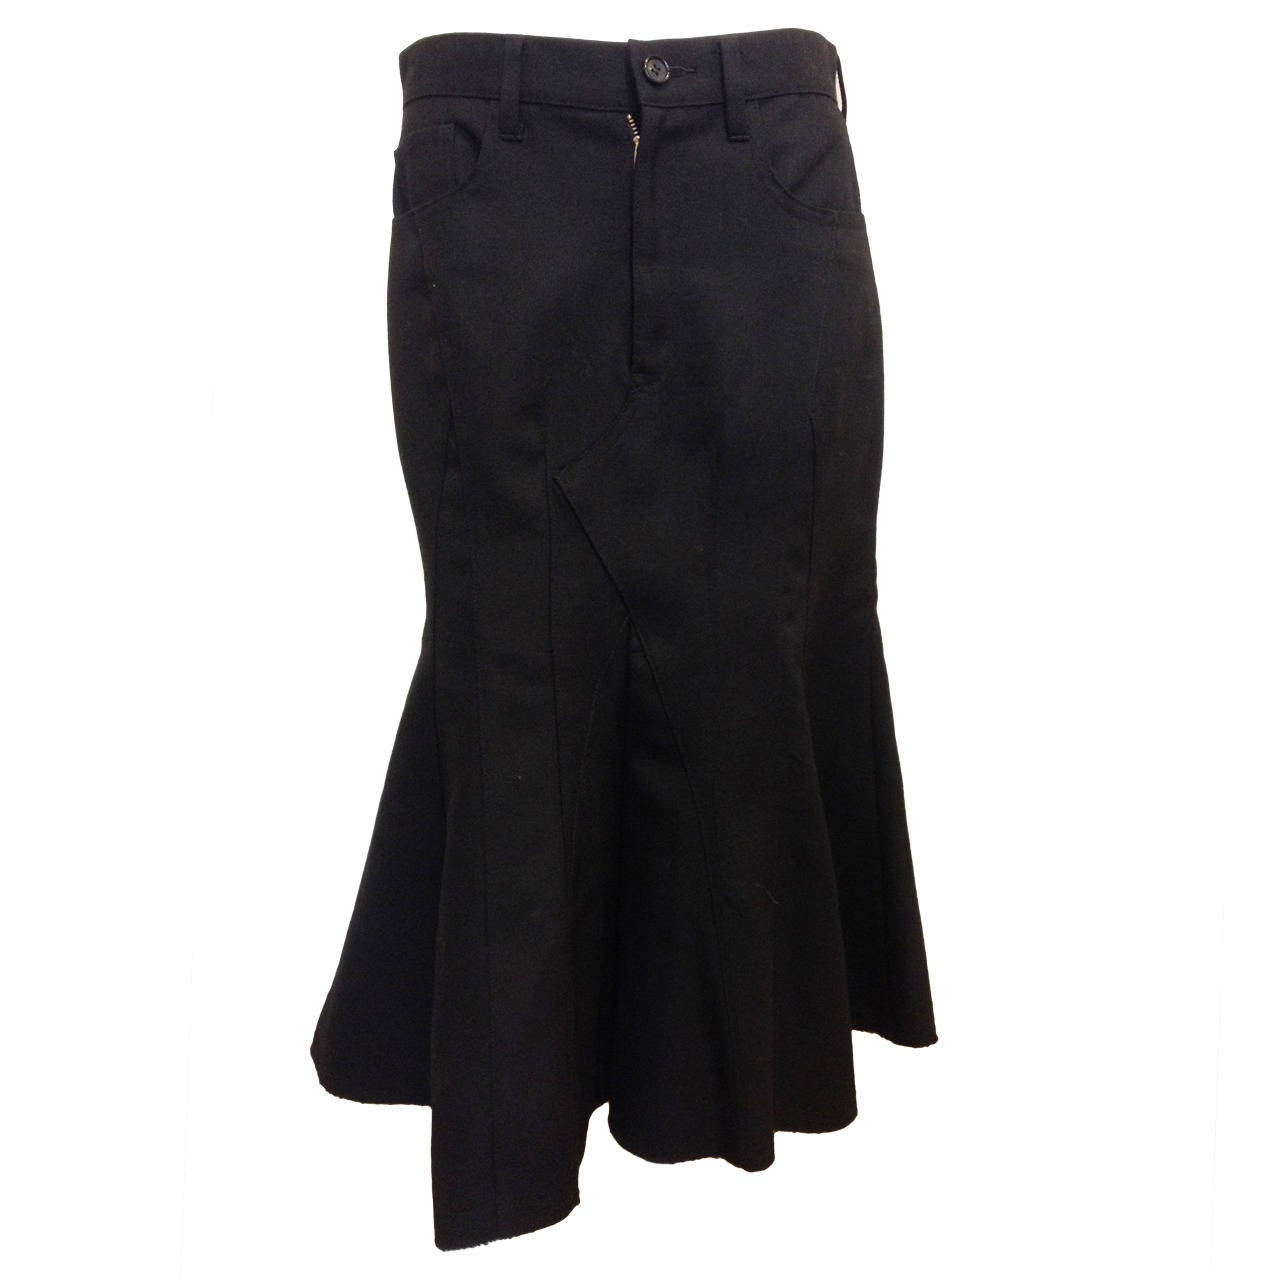 Junya Watanabe Black Flared Skirt at 1stdibs